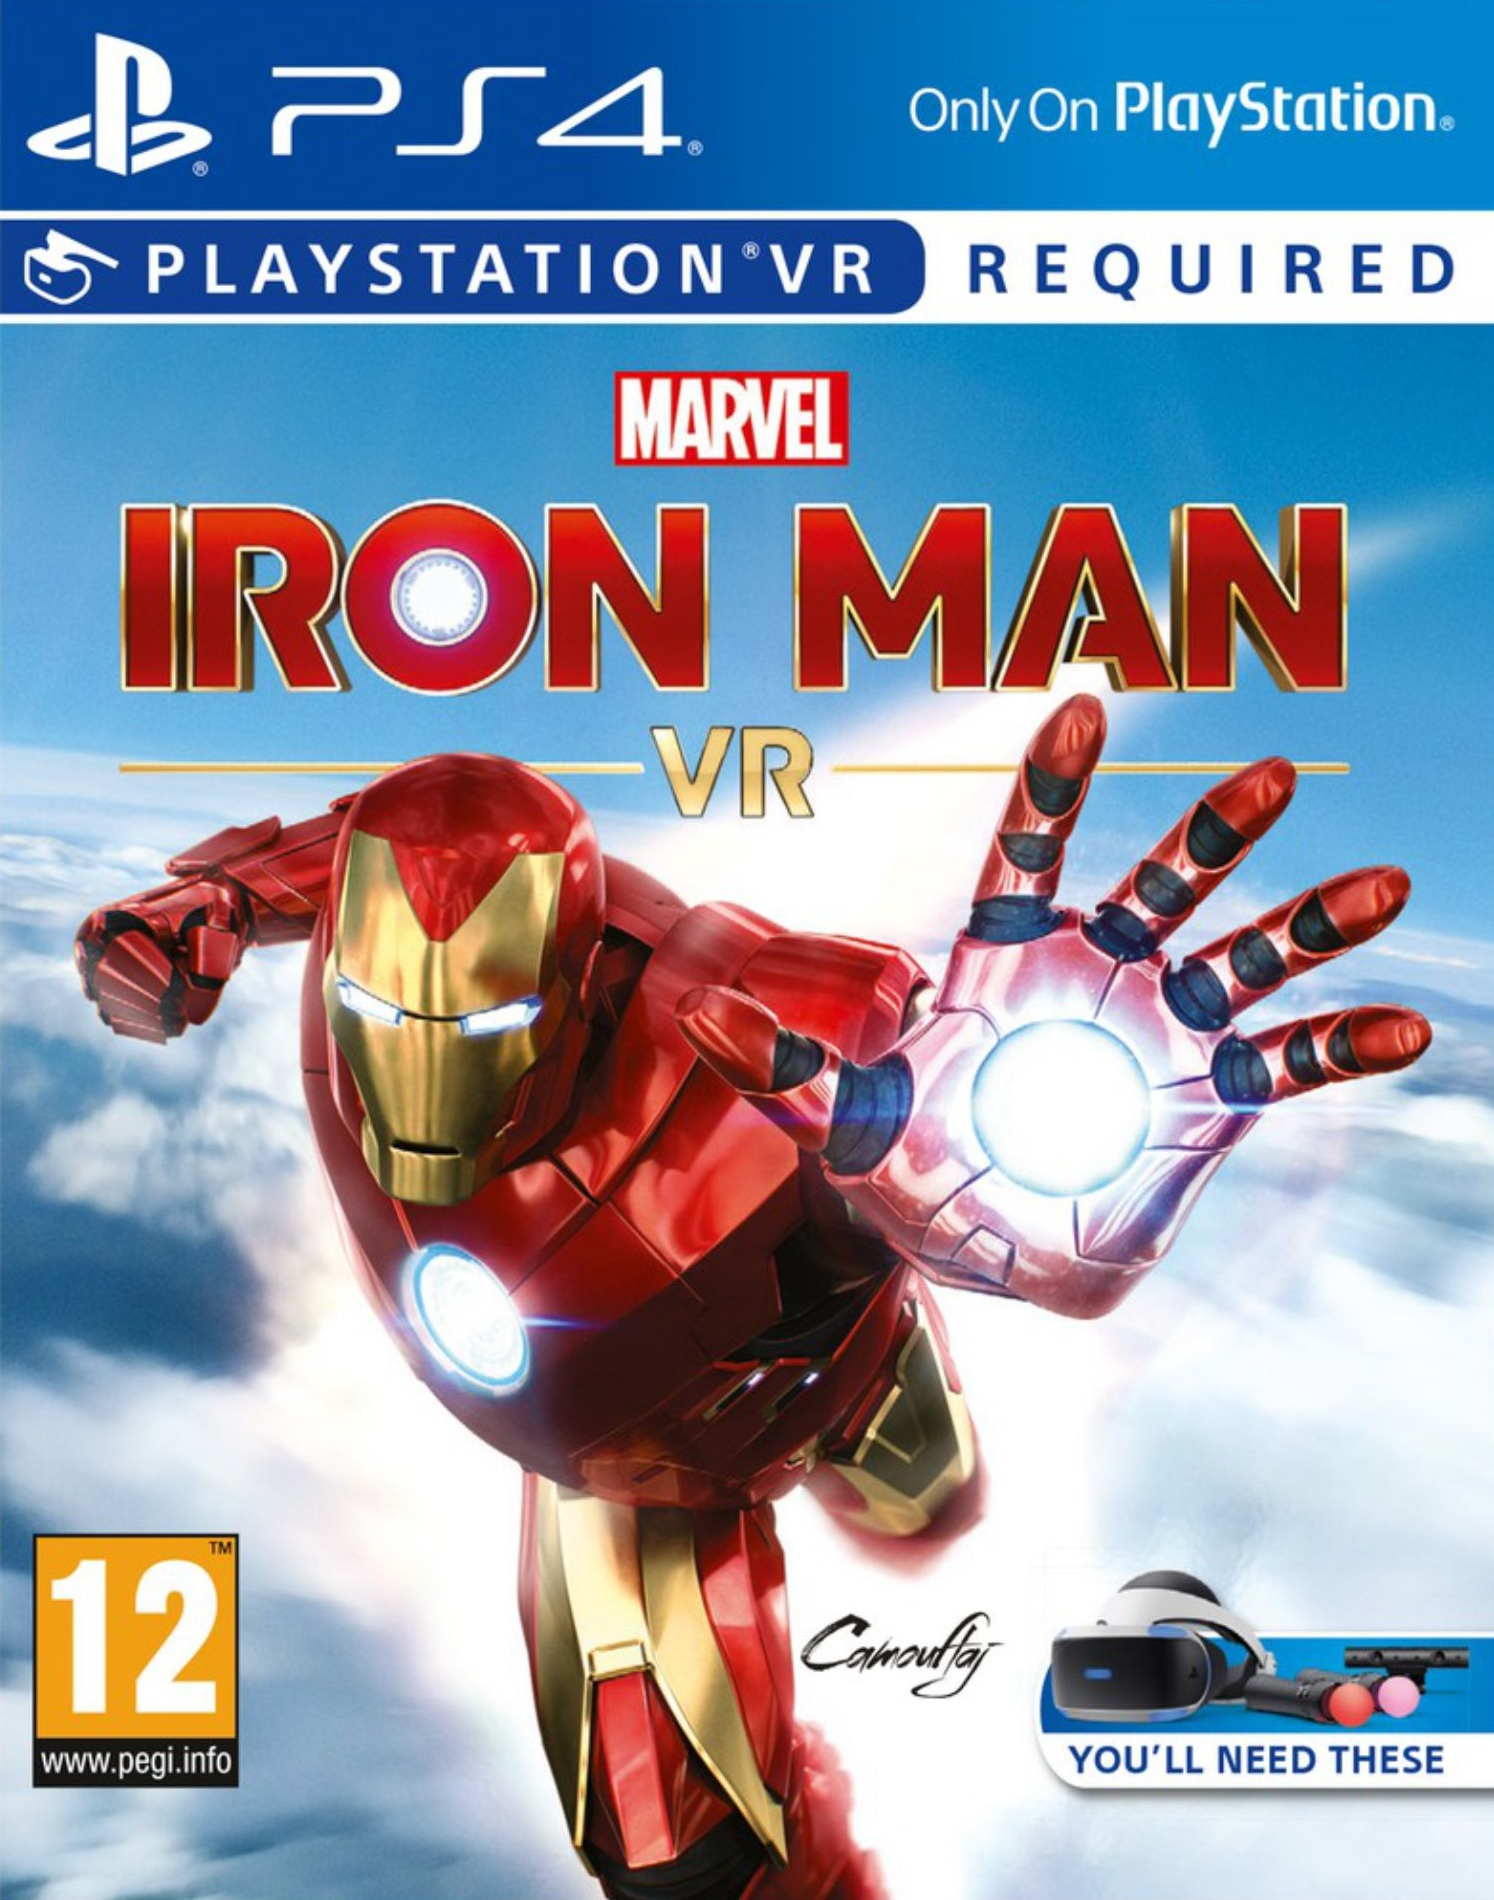 Marvels Iron Man VR - PlayStation 4 VR